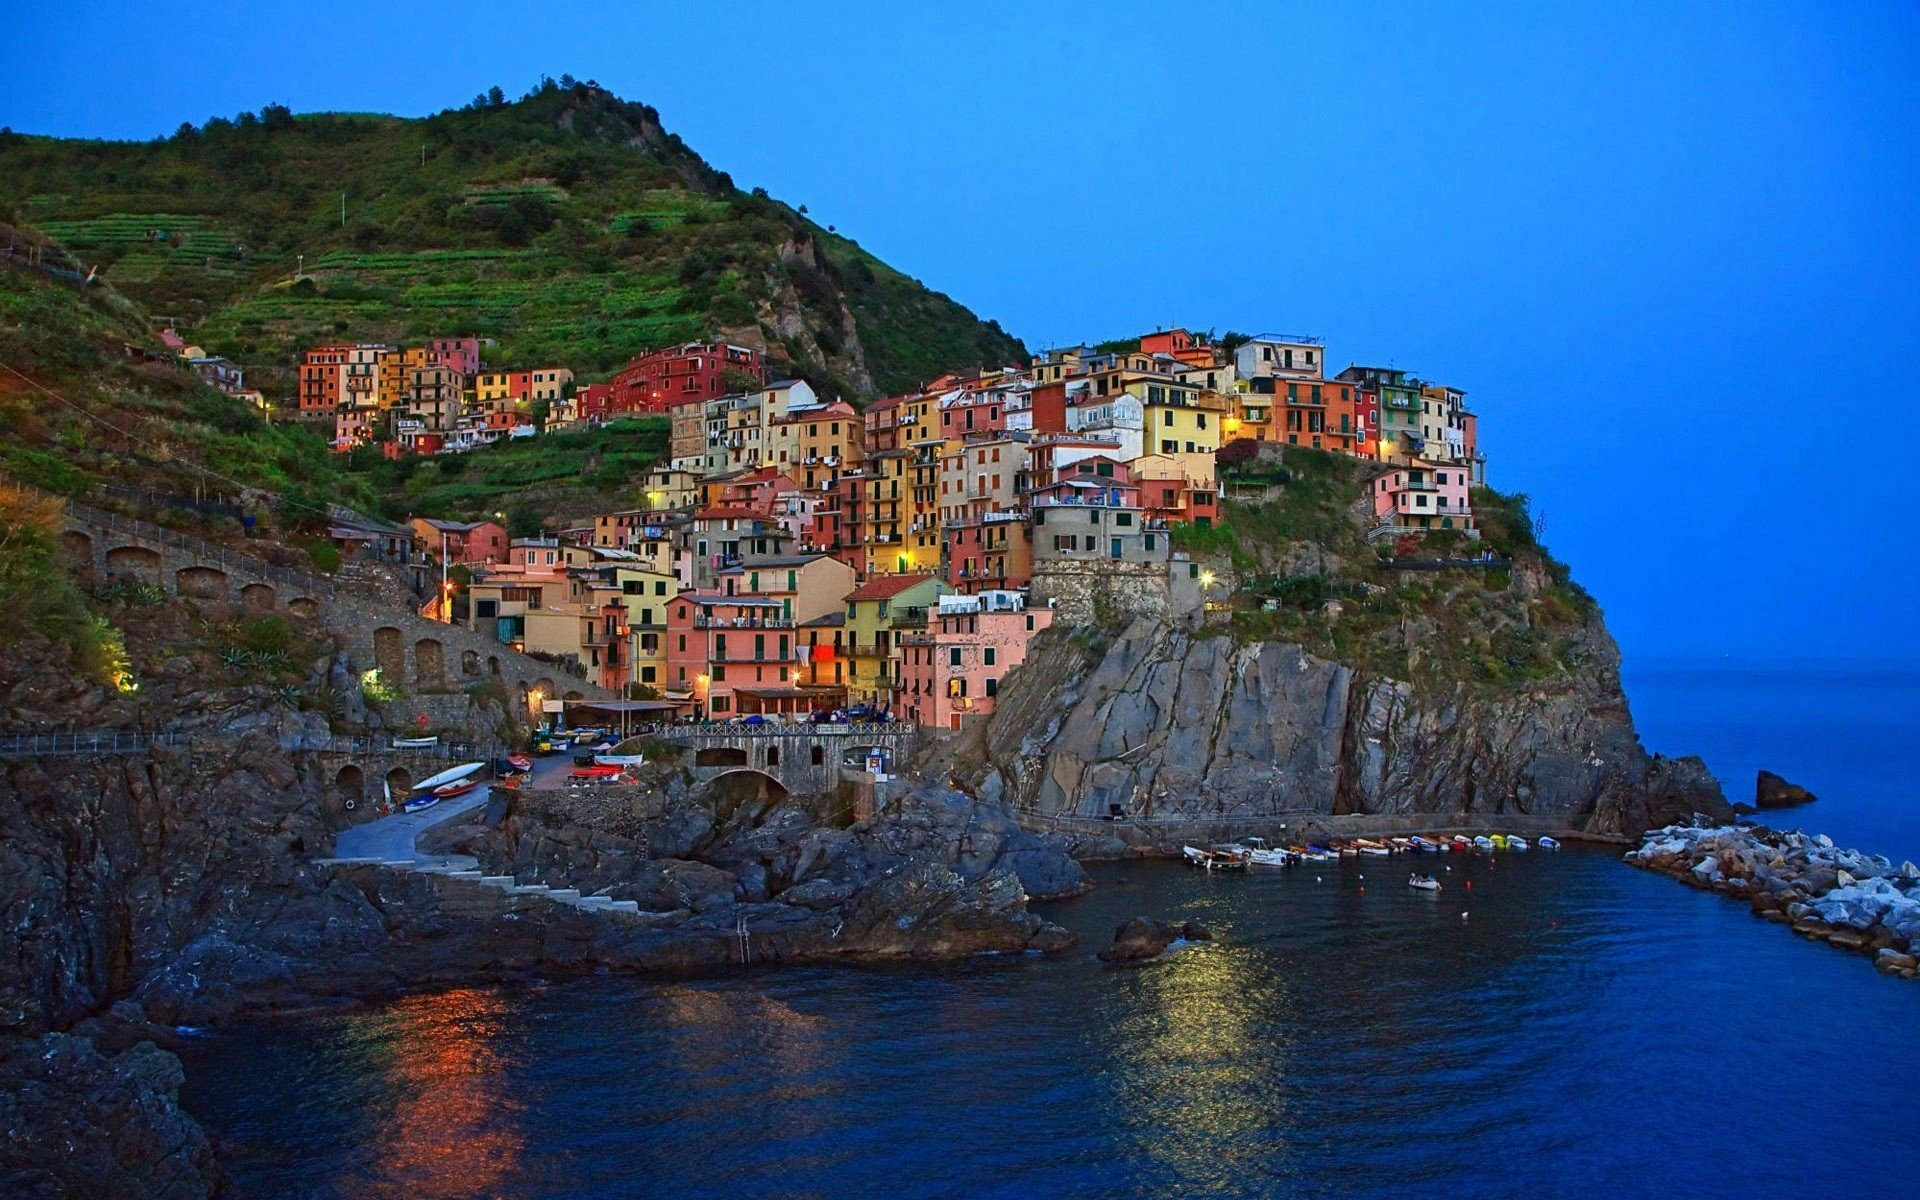 Manarola 4k Wallpapers For Your Desktop Or Mobile Screen